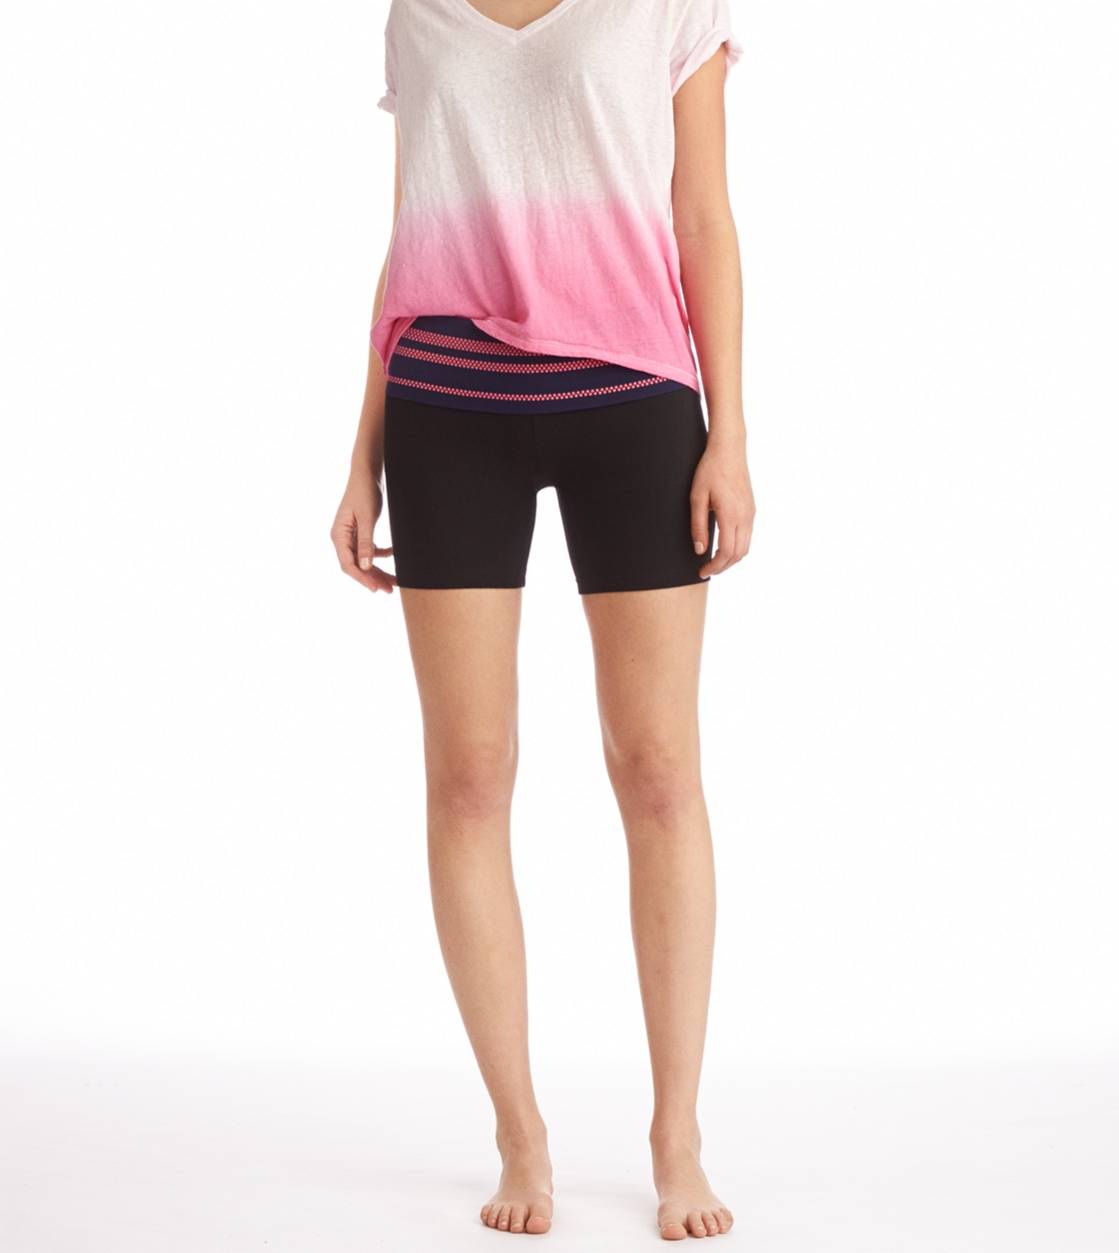 Royal Navy Aerie Neon Stud Midi Yoga Short